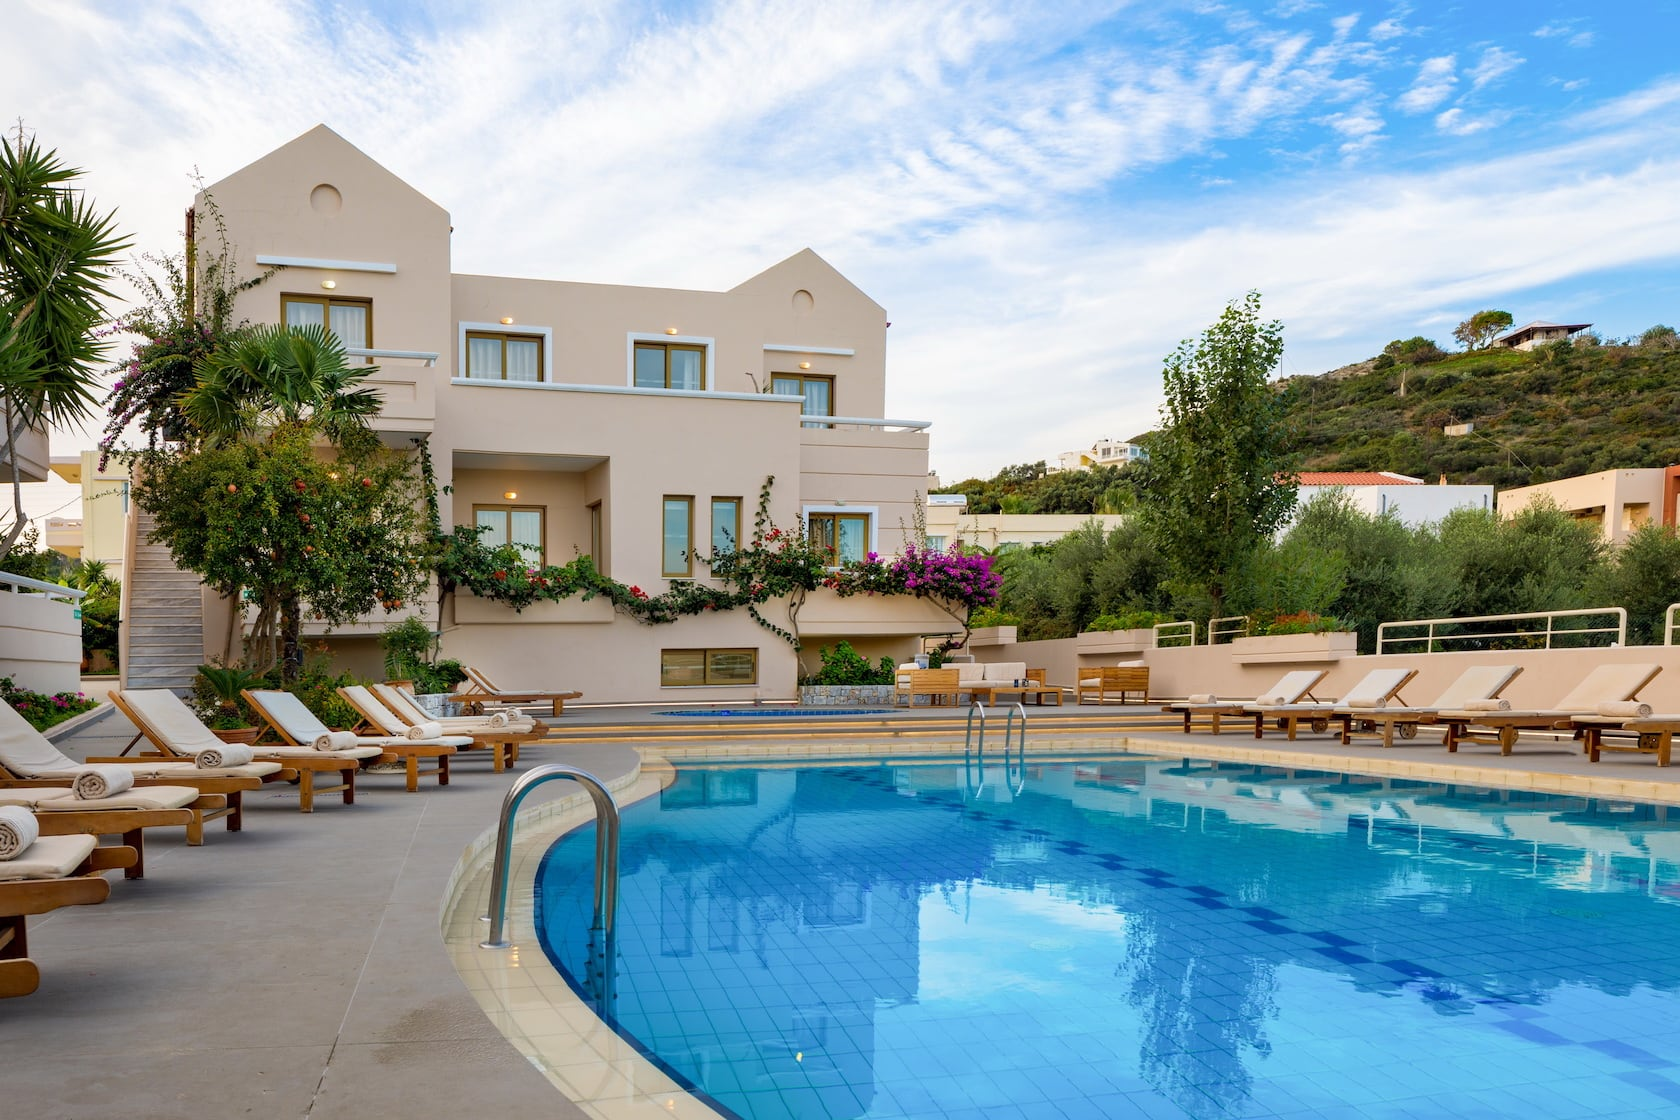 Sunbeds by the crystal clear swimming pool in Oscar Suites & Village in Chania, Crete.